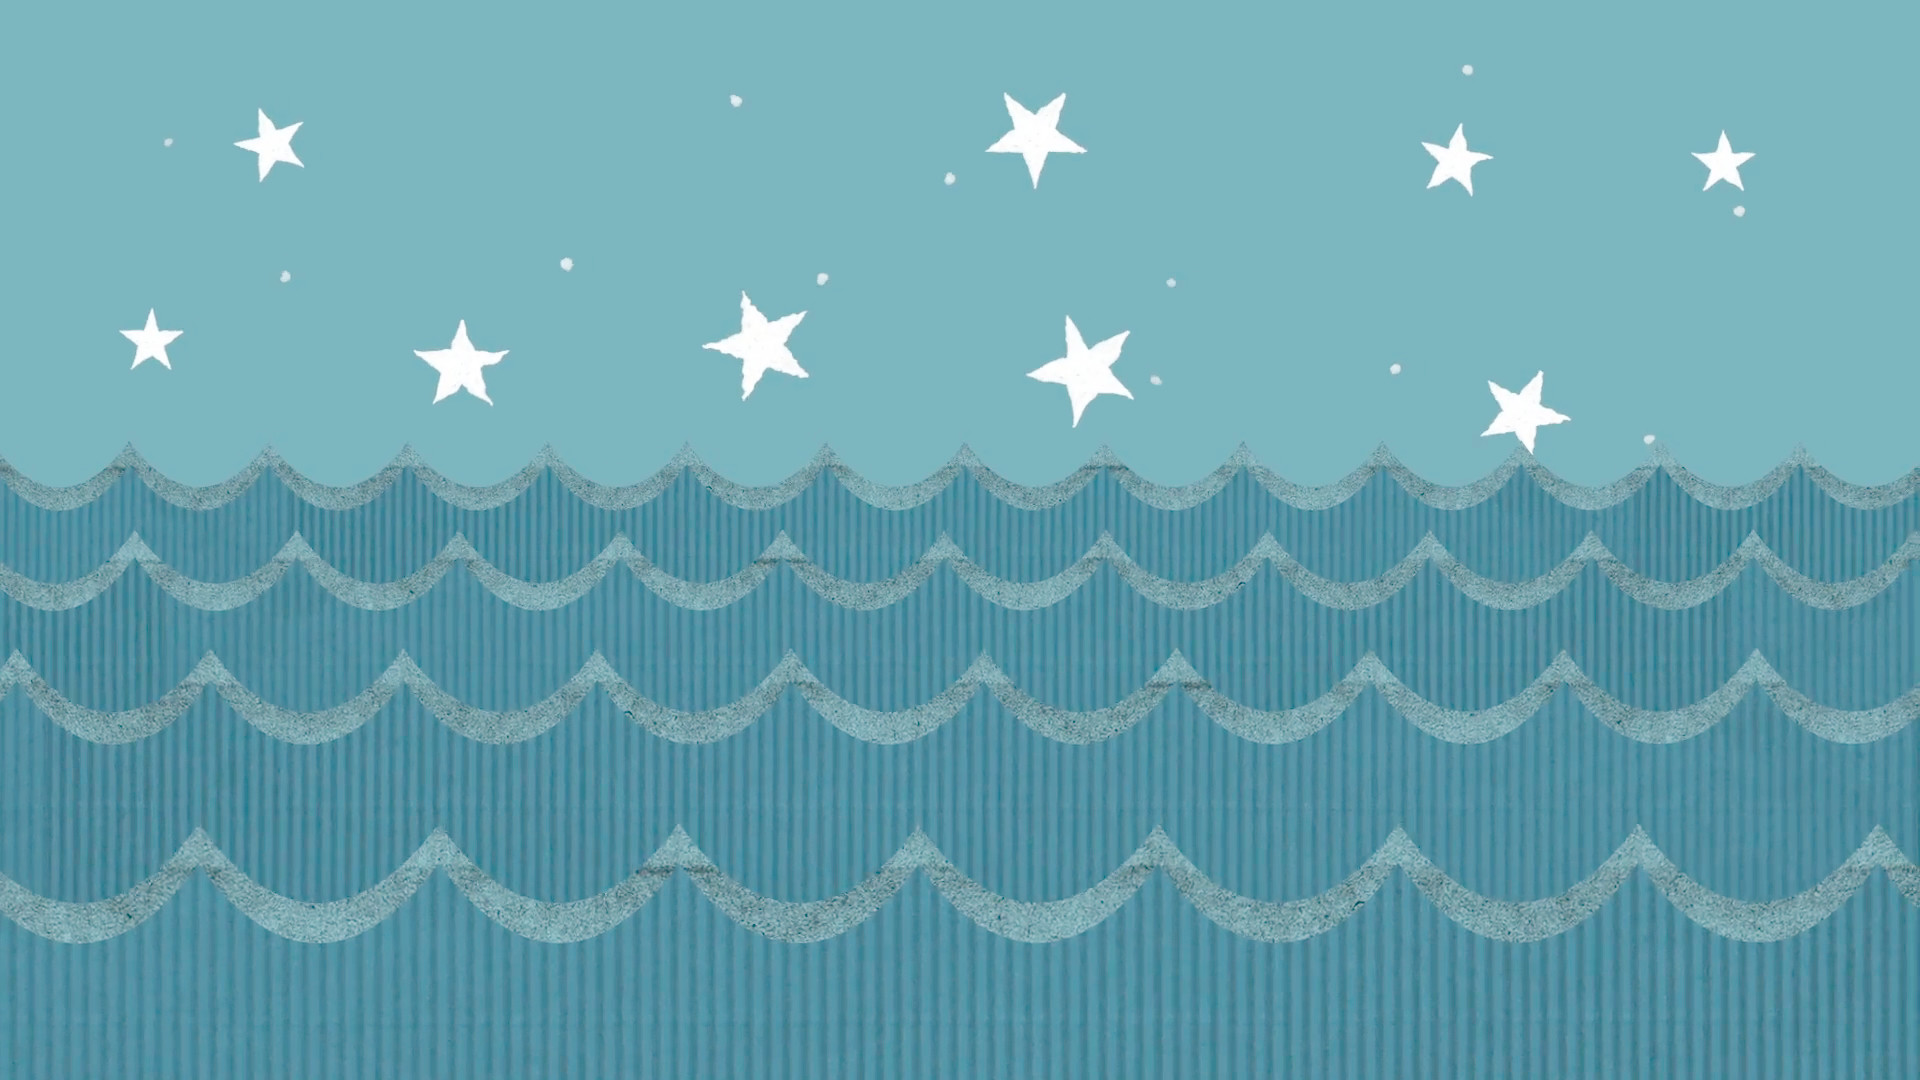 1920x1080 Theatrical Cardboard Sea Waves on a Cartoon Starry Night Sky Background